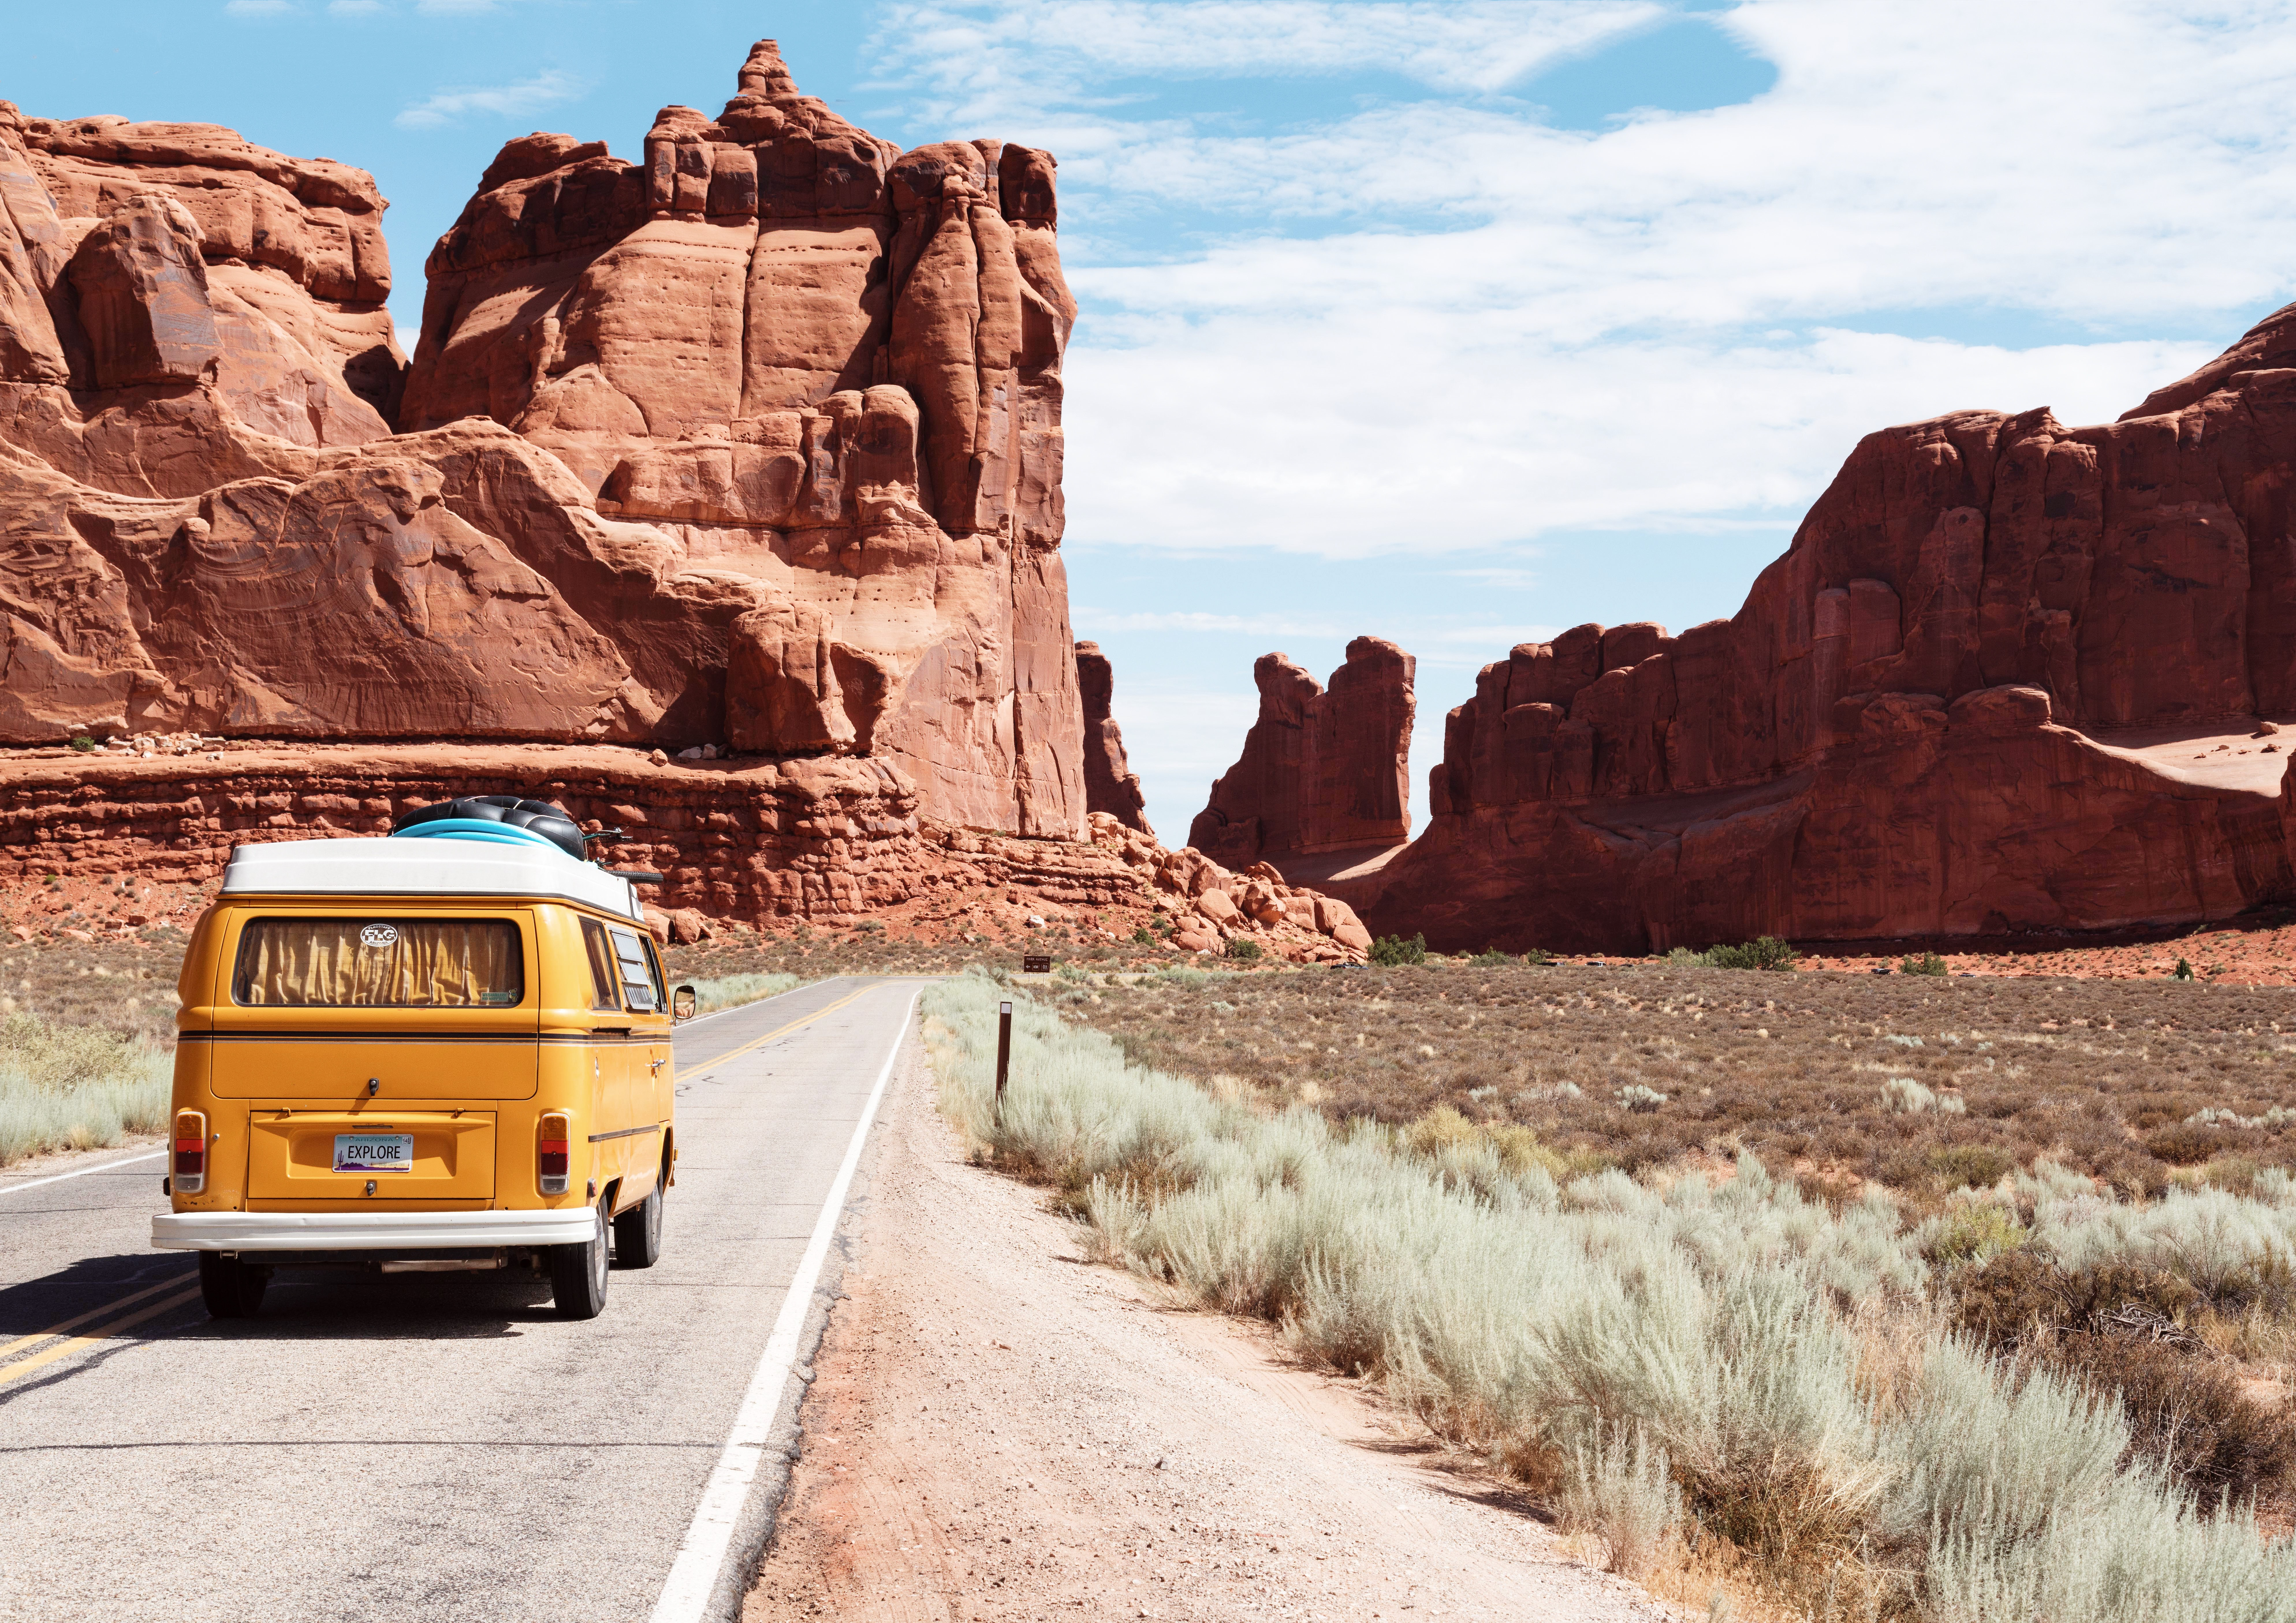 Road Trip: The Perfect Way toDe-stressDuring These Trying Times